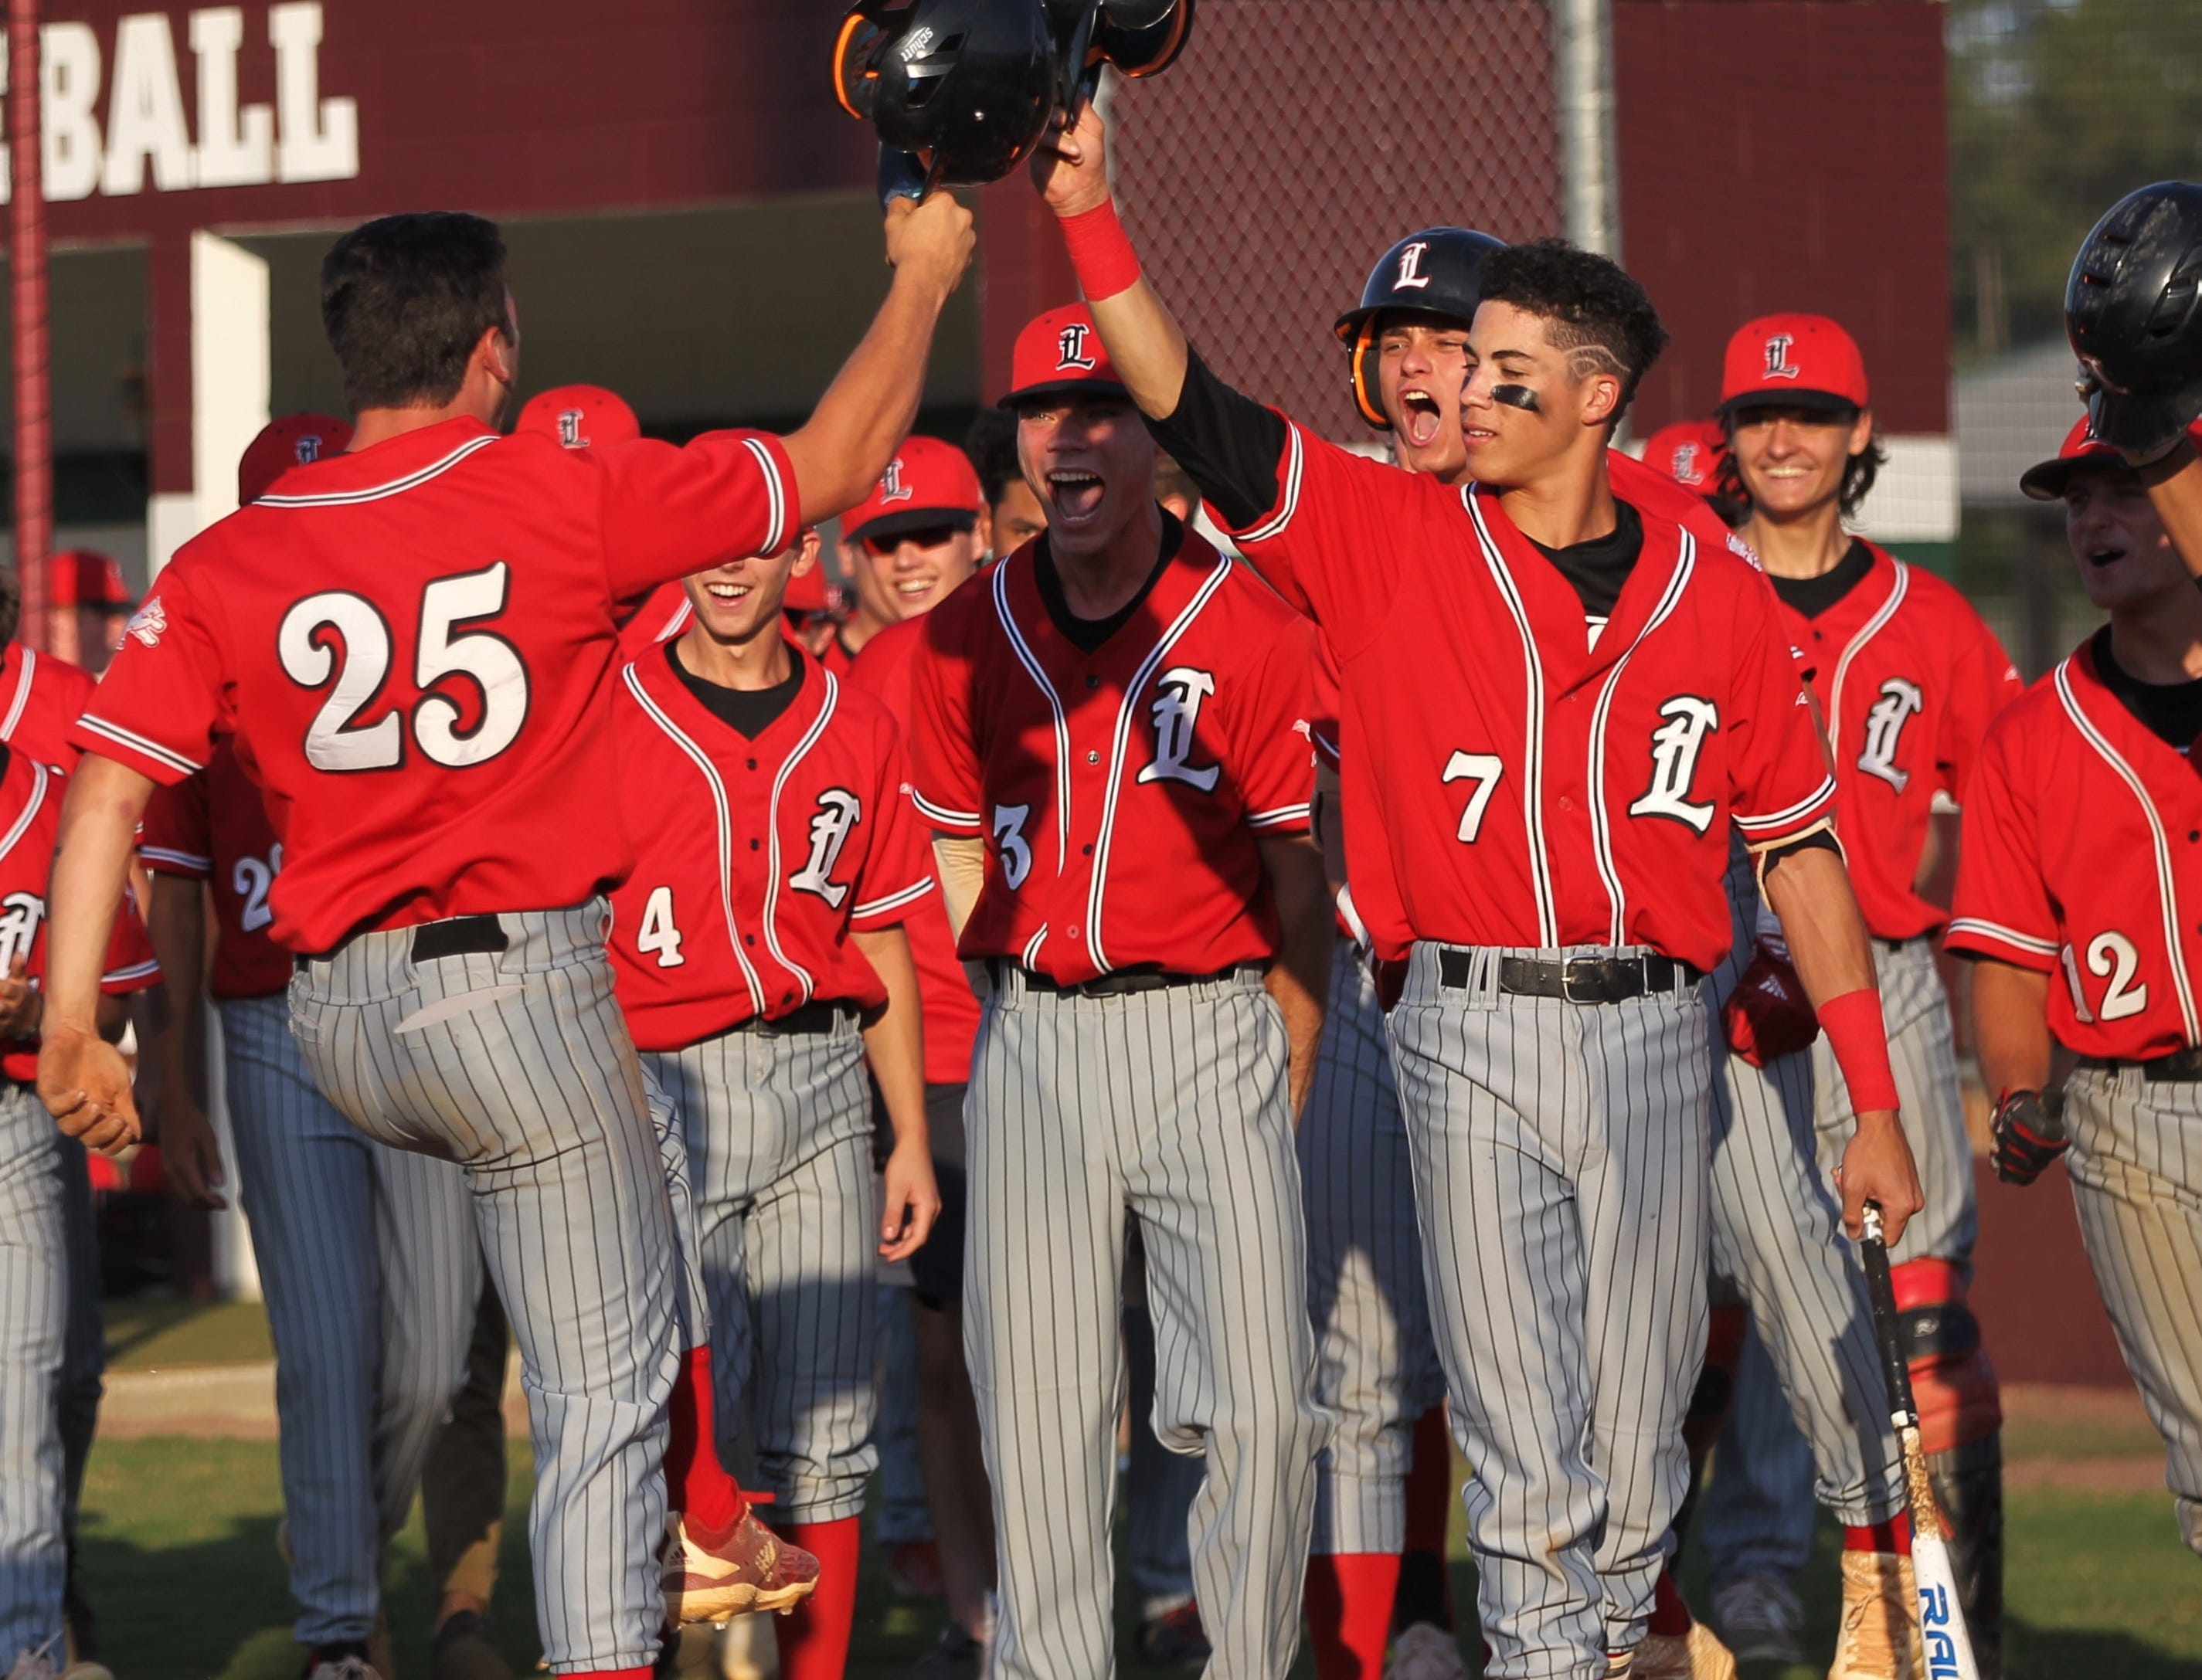 Leon senior Tyler Borges (25) celebrates his home run with True Fontenot (7), Matt Sims (3) and the rest of his teammates as Chiles beat Leon 10-6 during a District 2-8A semifinal on May 7, 2019.